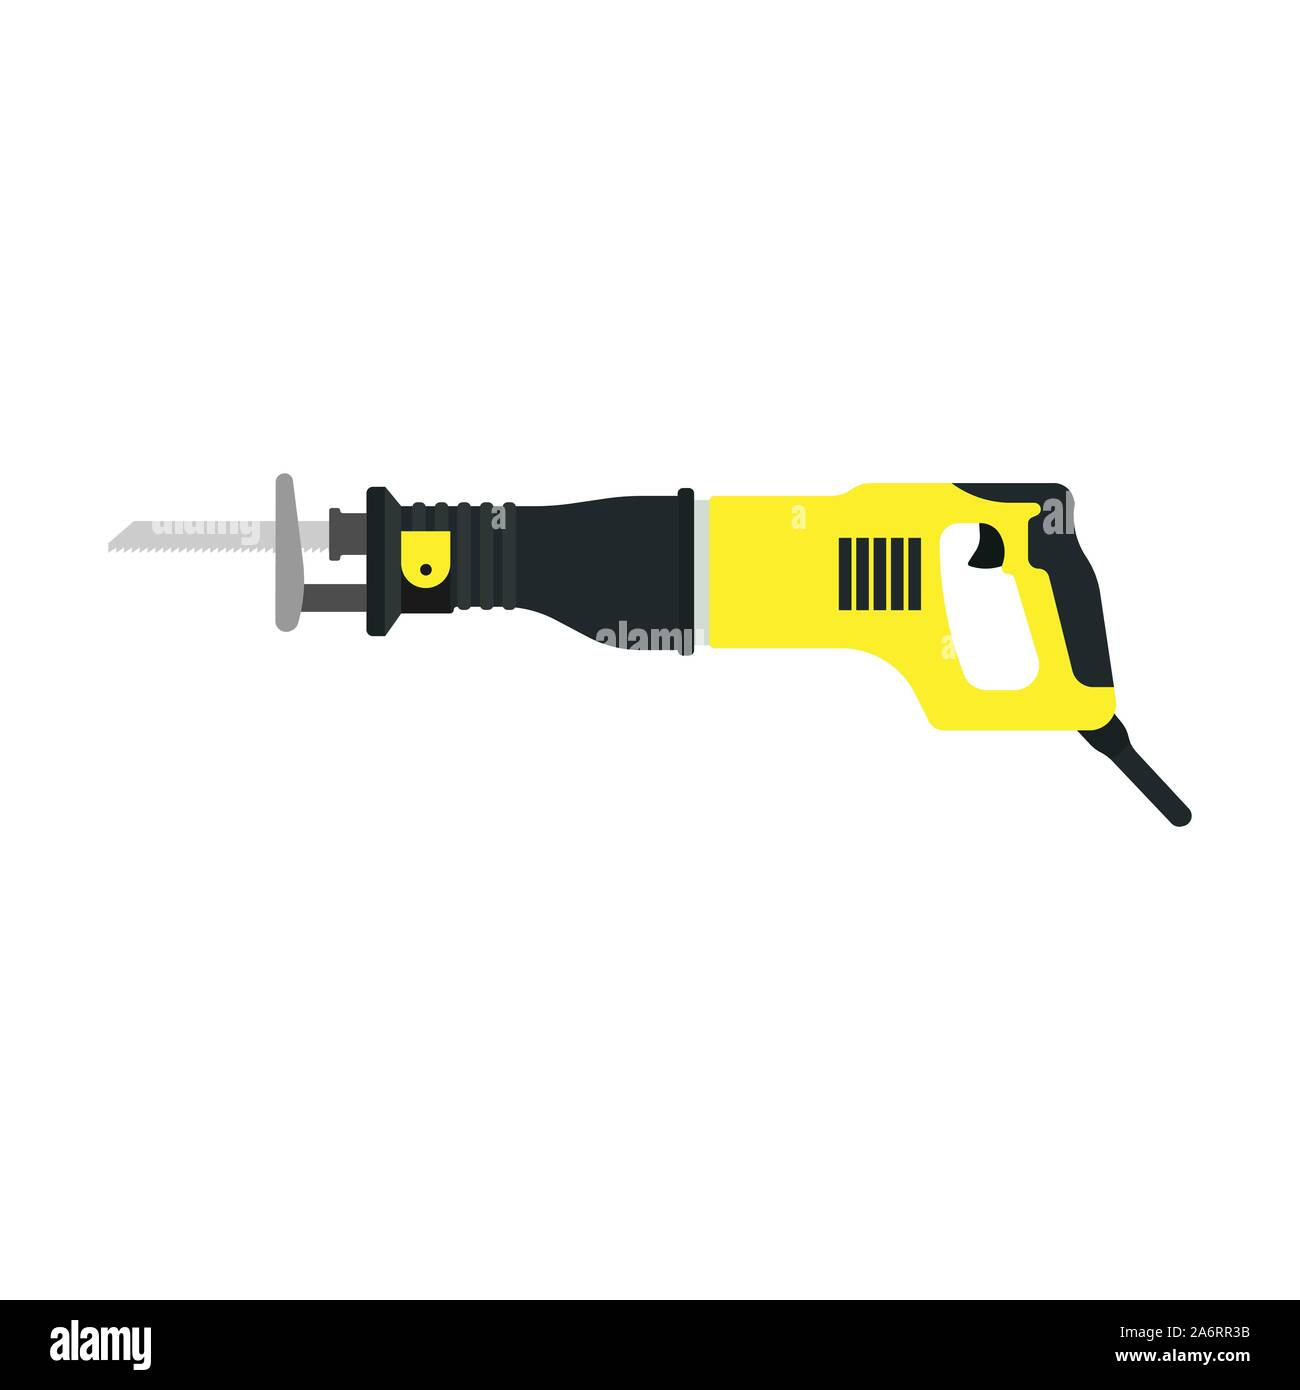 Technician Vectors High Resolution Stock Photography and Images ...